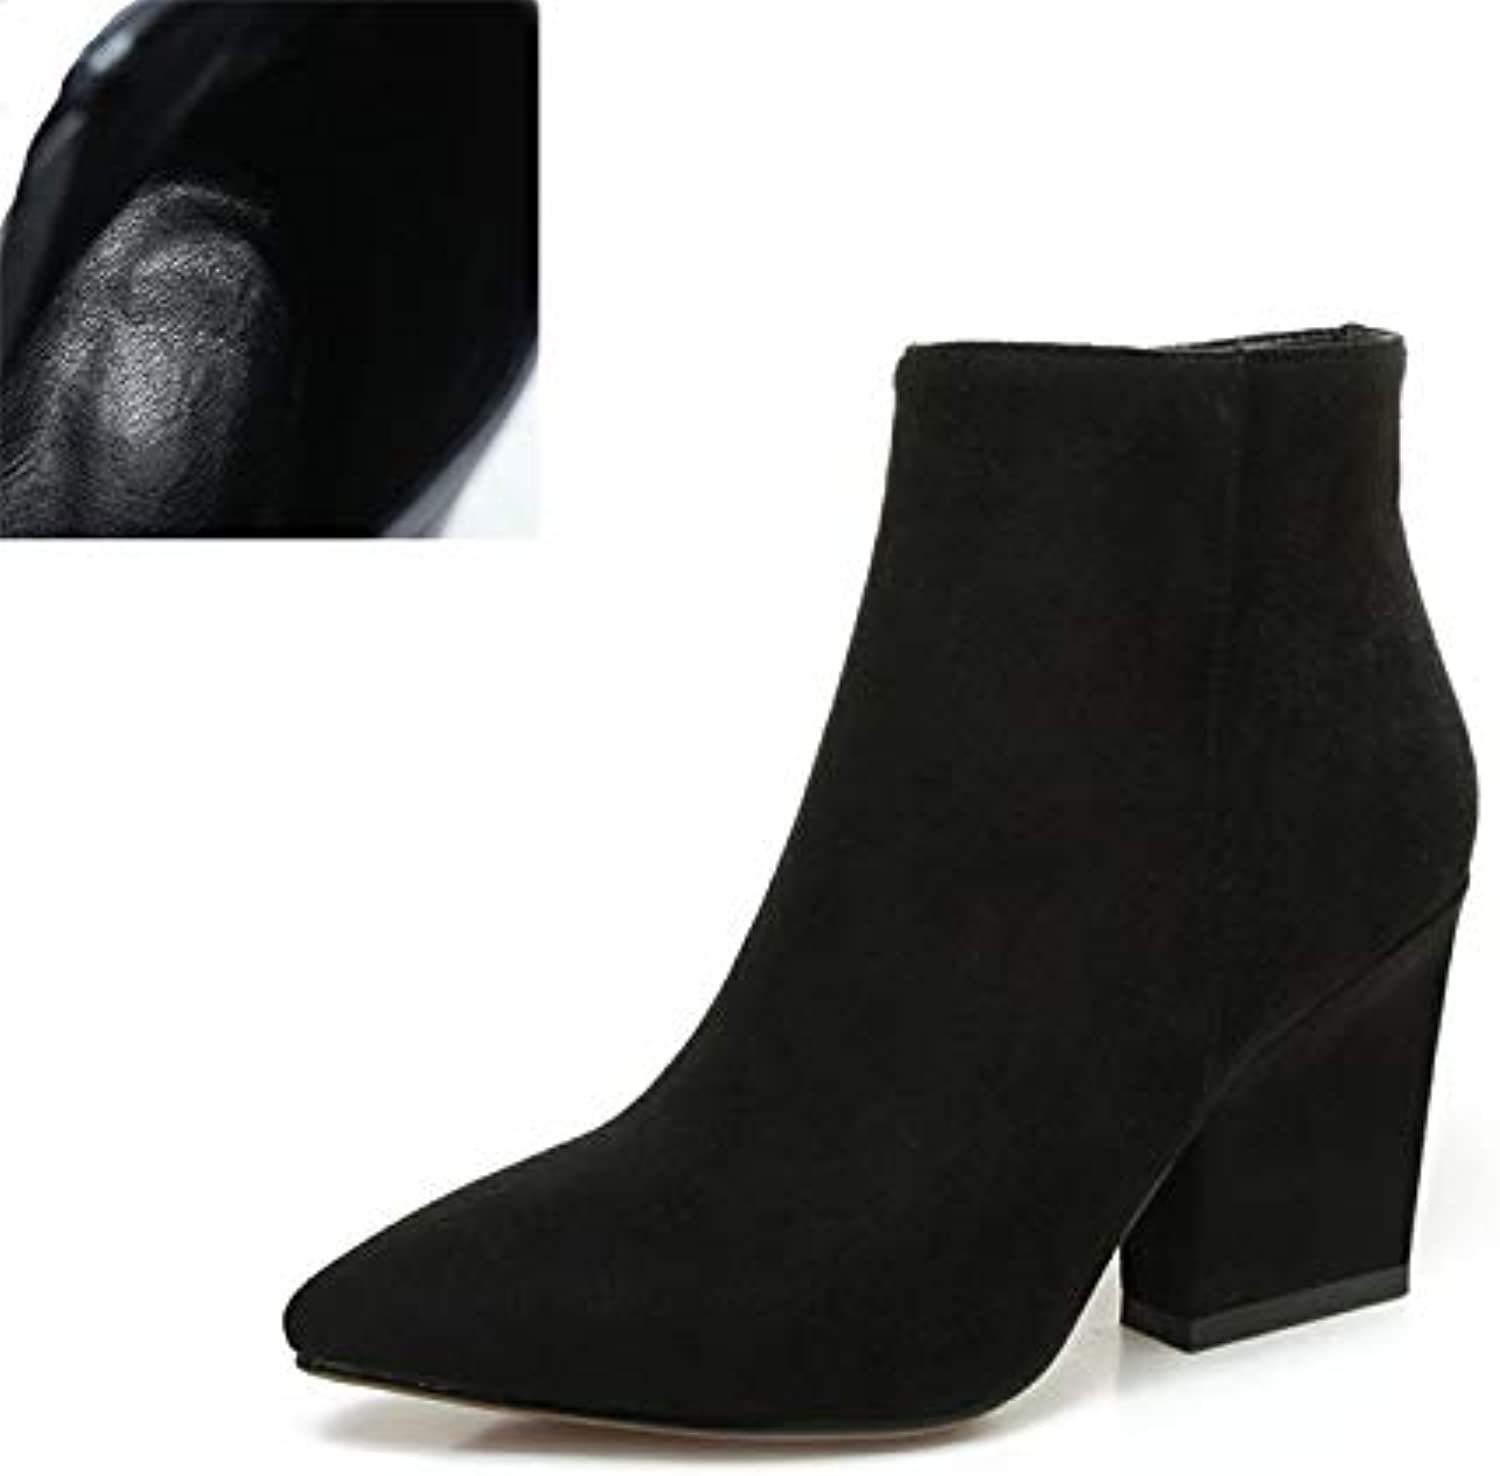 Fumak 2018 Autumn Solid OL Mature Black Ankle Boots Women Zip Closure Pointed Toe High Heels shoes Woman Large Size 32-43